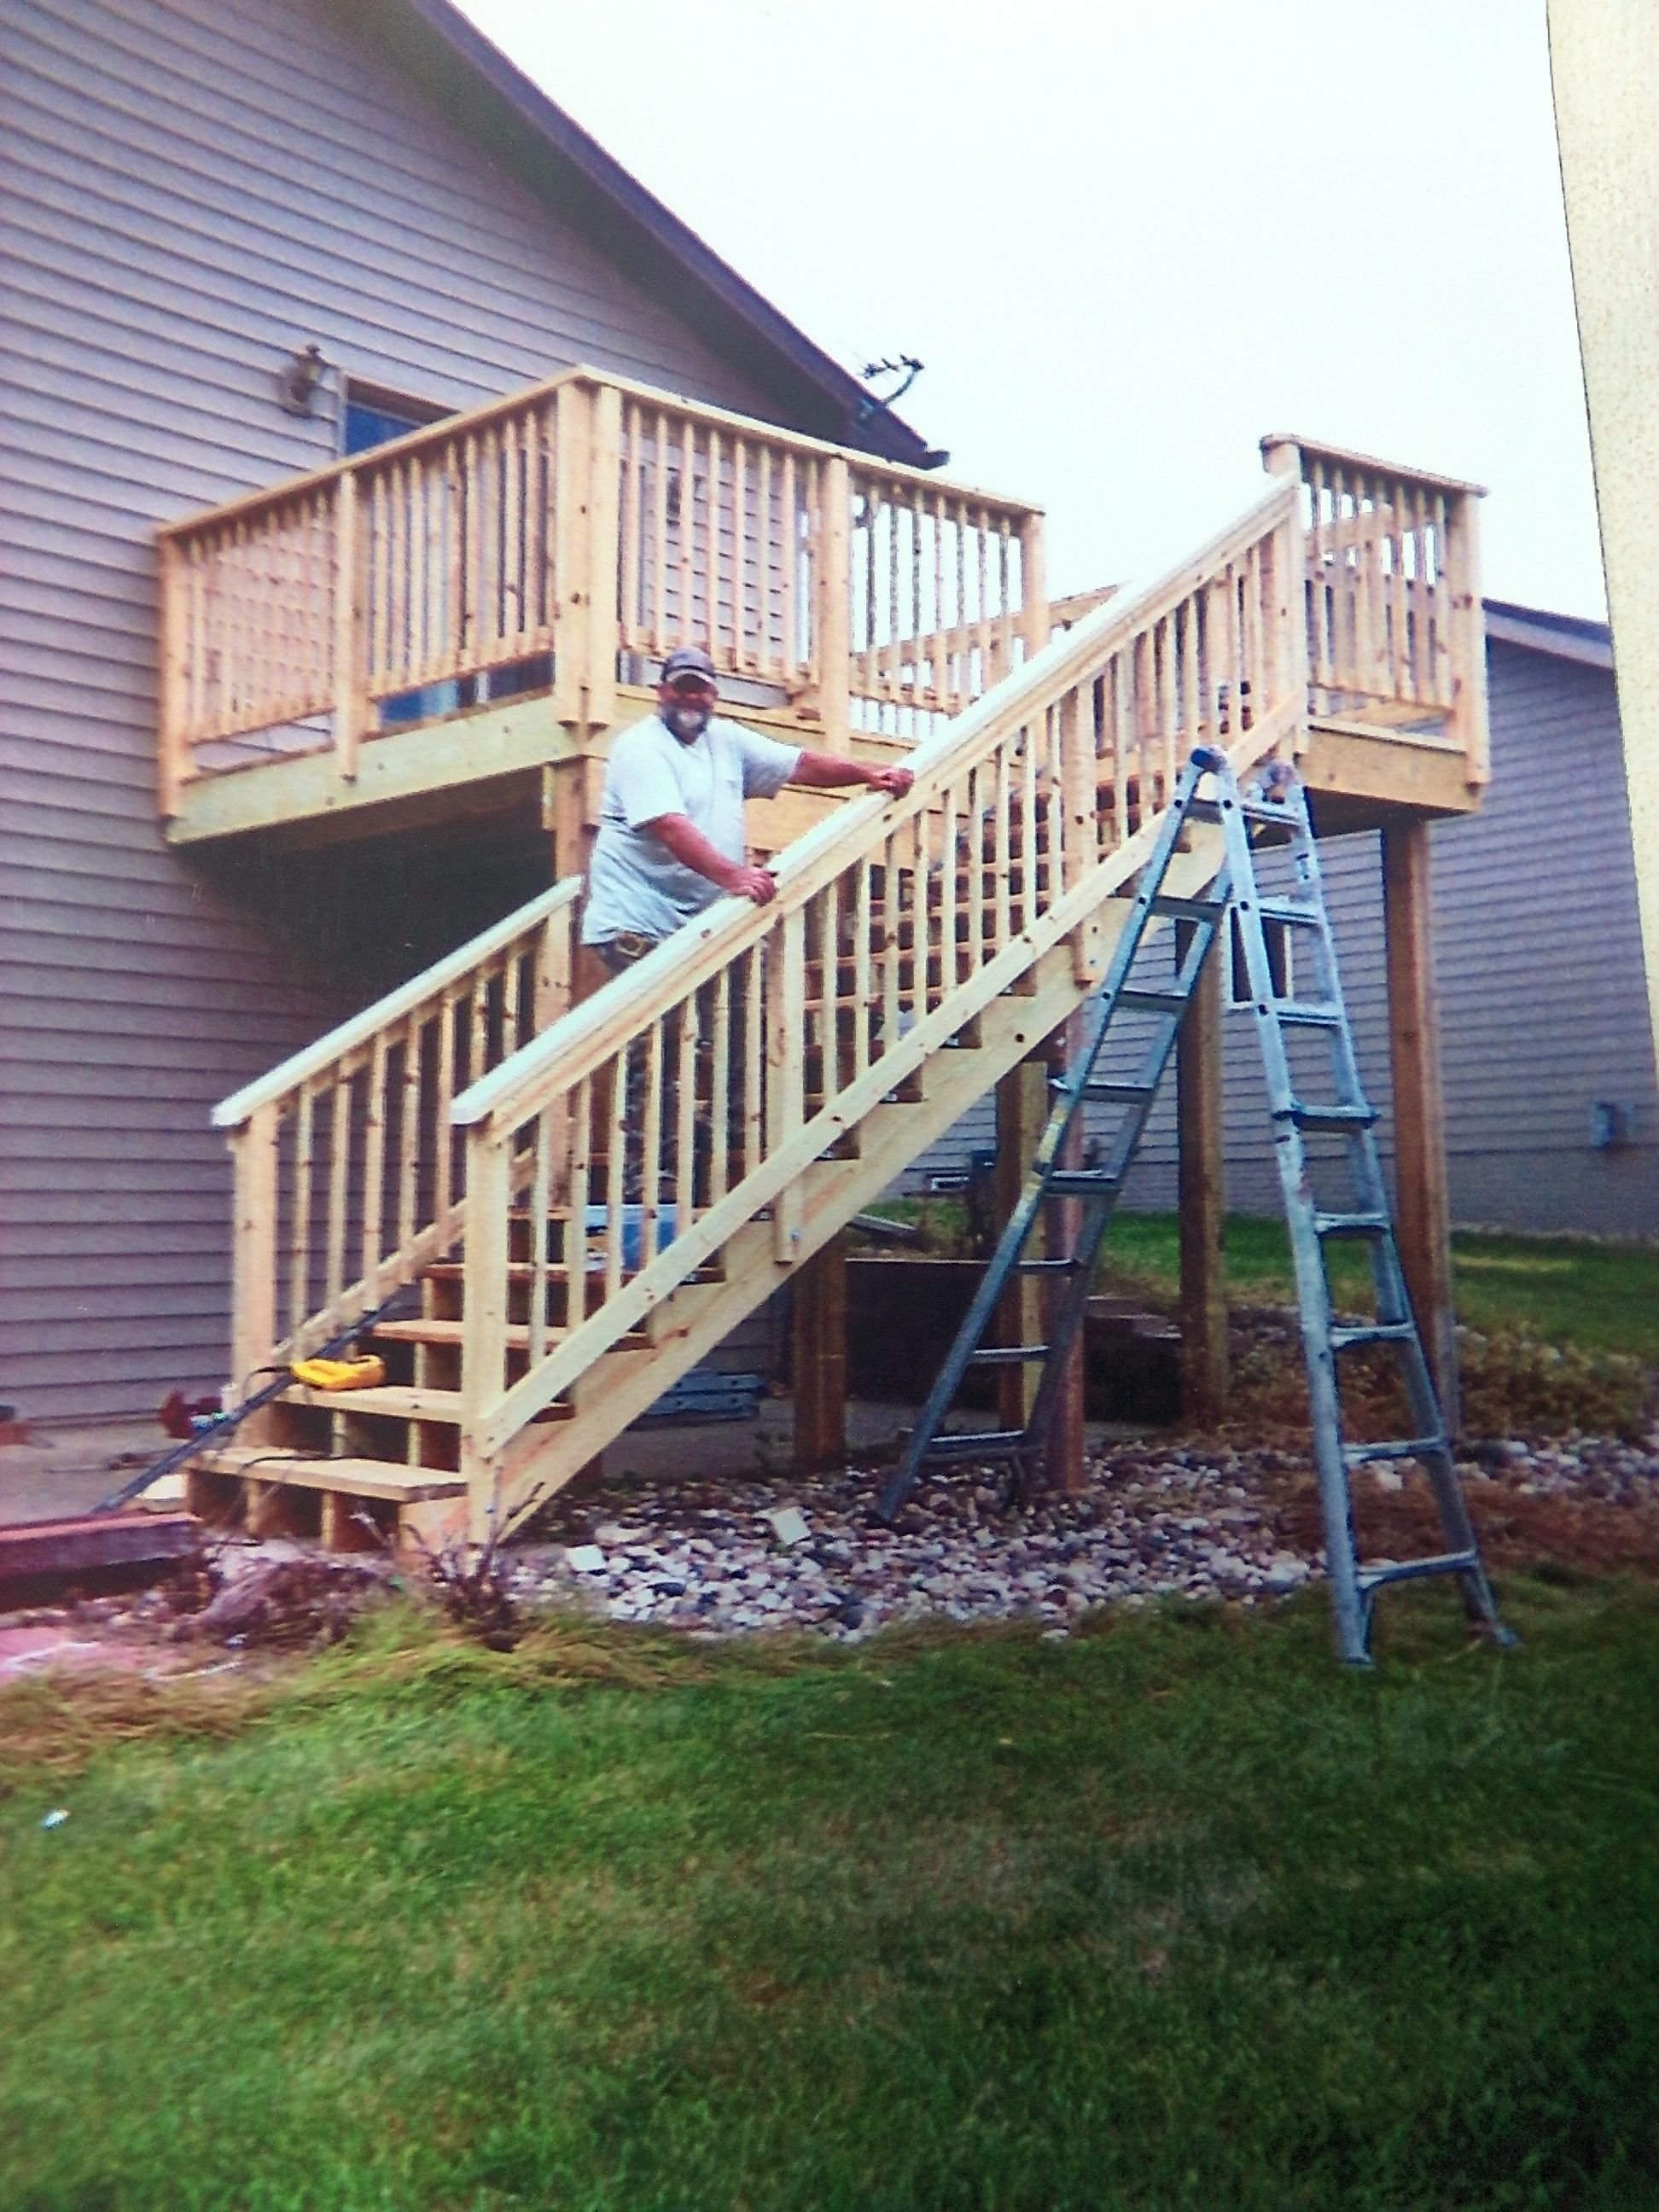 Plan Your Next Deck Project With Our Design It Center Deck Estimator Whether It S Creating A One Of A Kind Dec Deck Projects Outdoor Improvements Deck Design